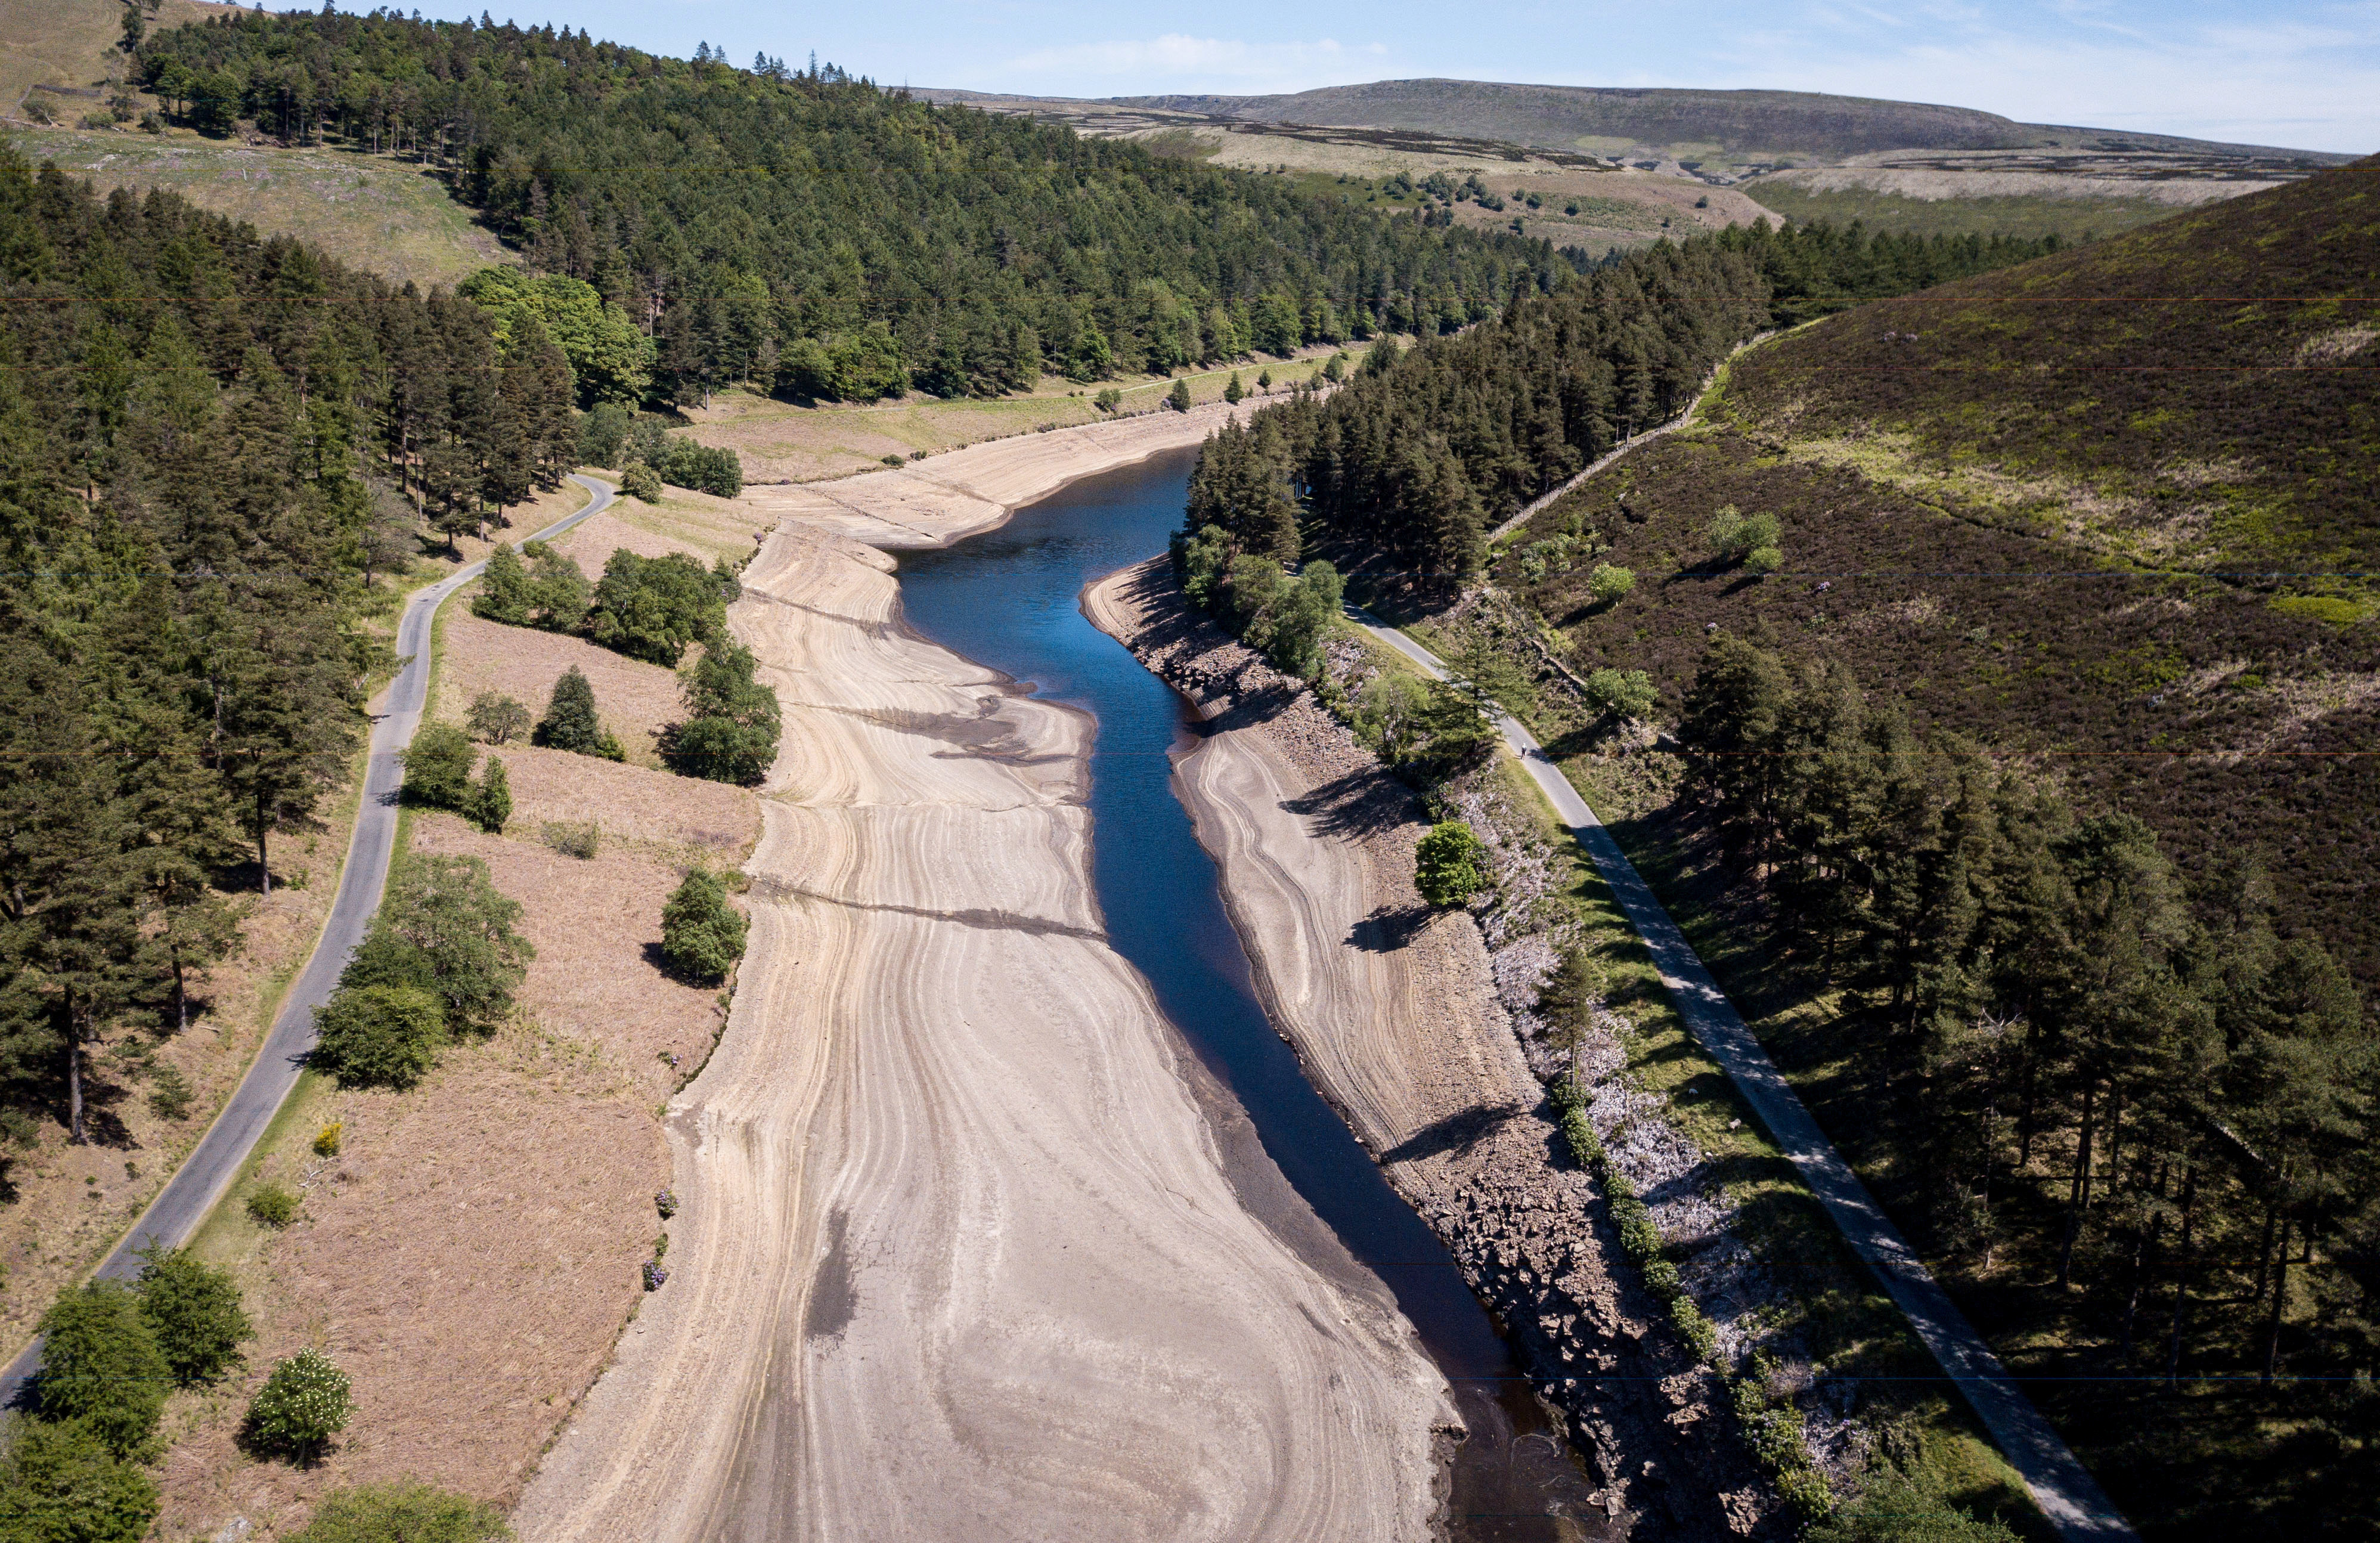 Dramatic images show how huge reservoir dwindled to a tiny stream in heat wave - fox